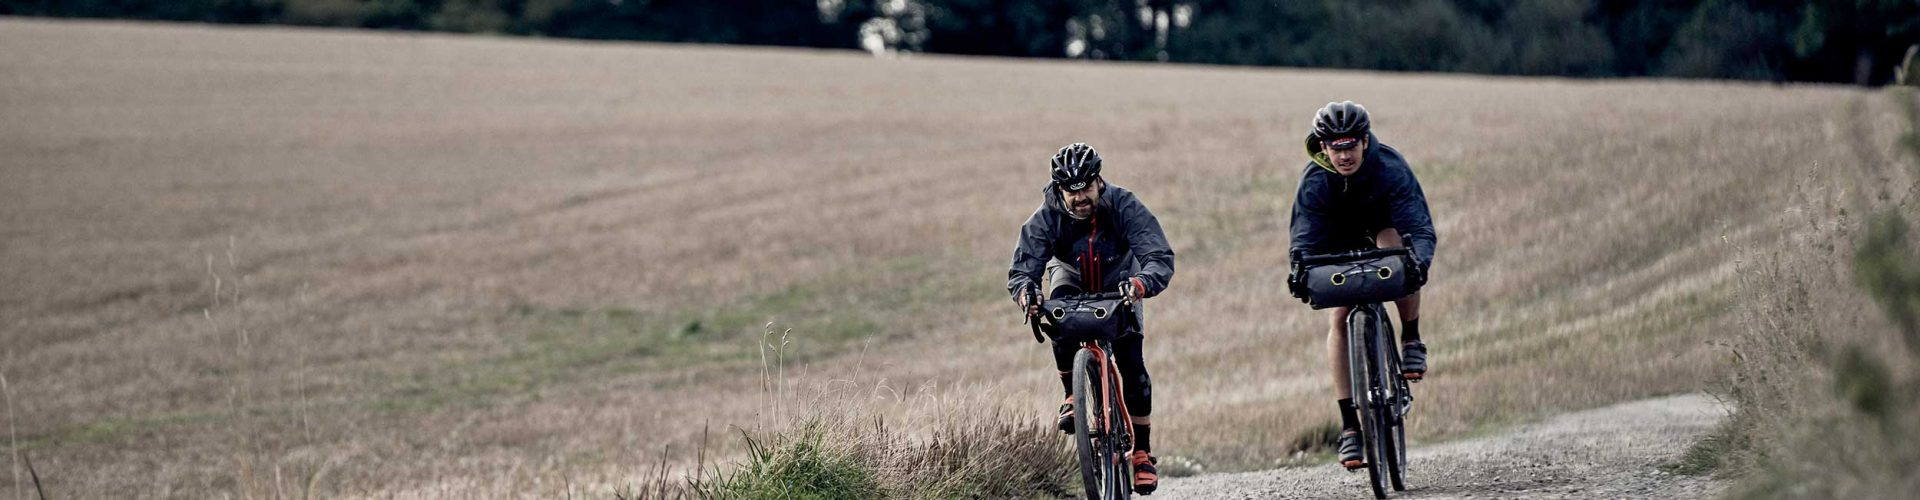 Find A Store | Independent Bike Shops All Over The World